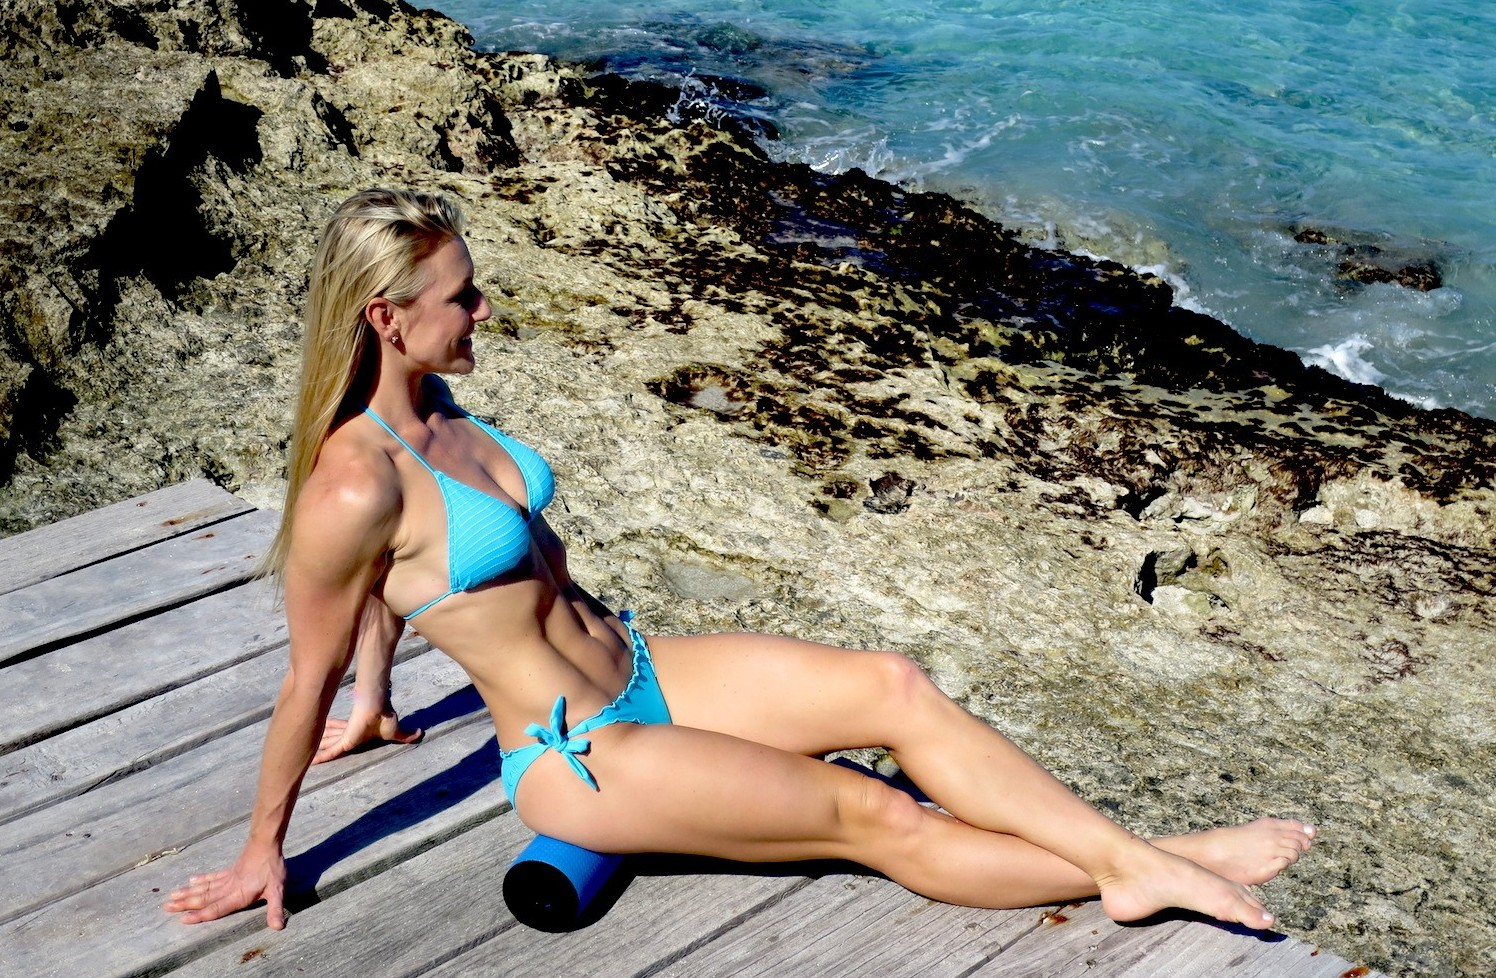 IMG 2778 e1421570737599 - Is getting rid of cellulite as easy as foam rolling every day?